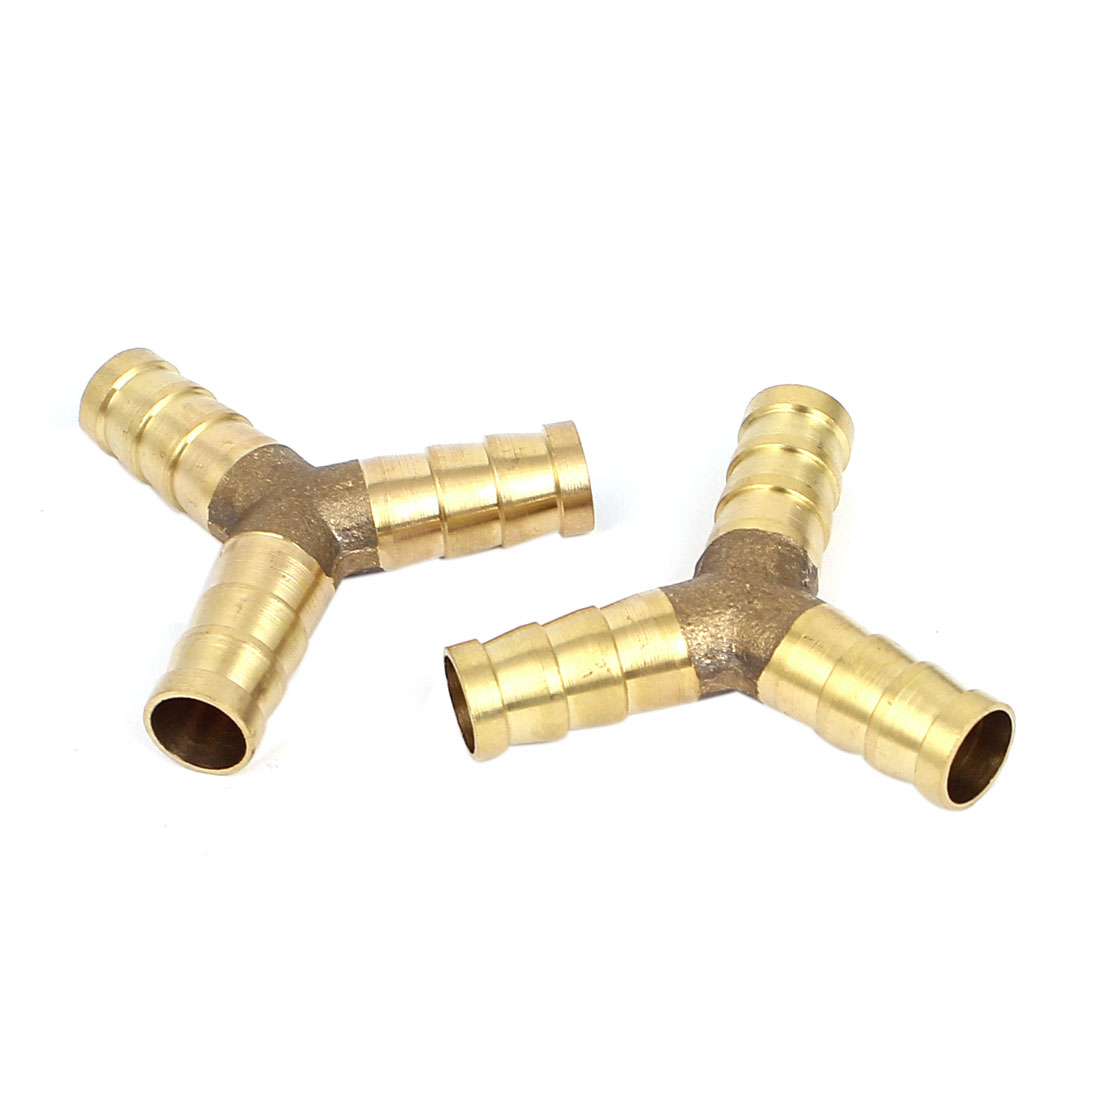 2 Pcs 8mm Brass Barbed Y Piece 3 Way Fuel Air Hose Pipe Tube Joiner Coupler